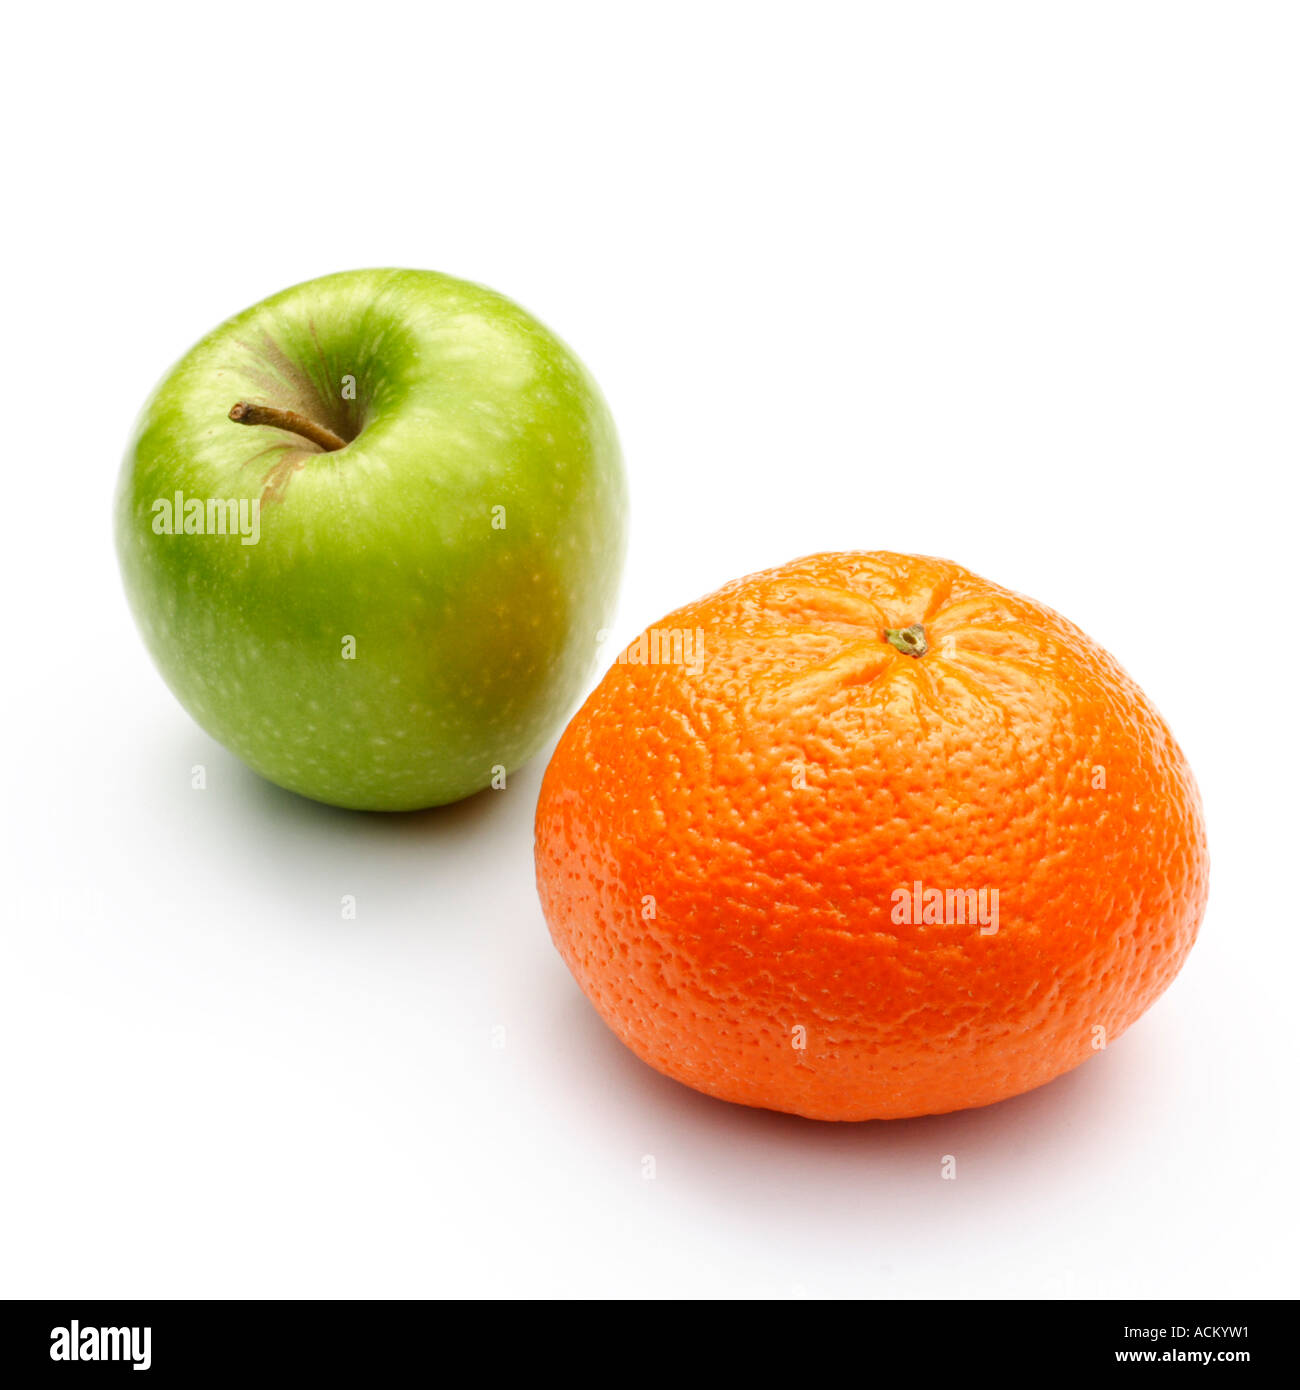 A green apple and a mandarin orange on a white background - Stock Image